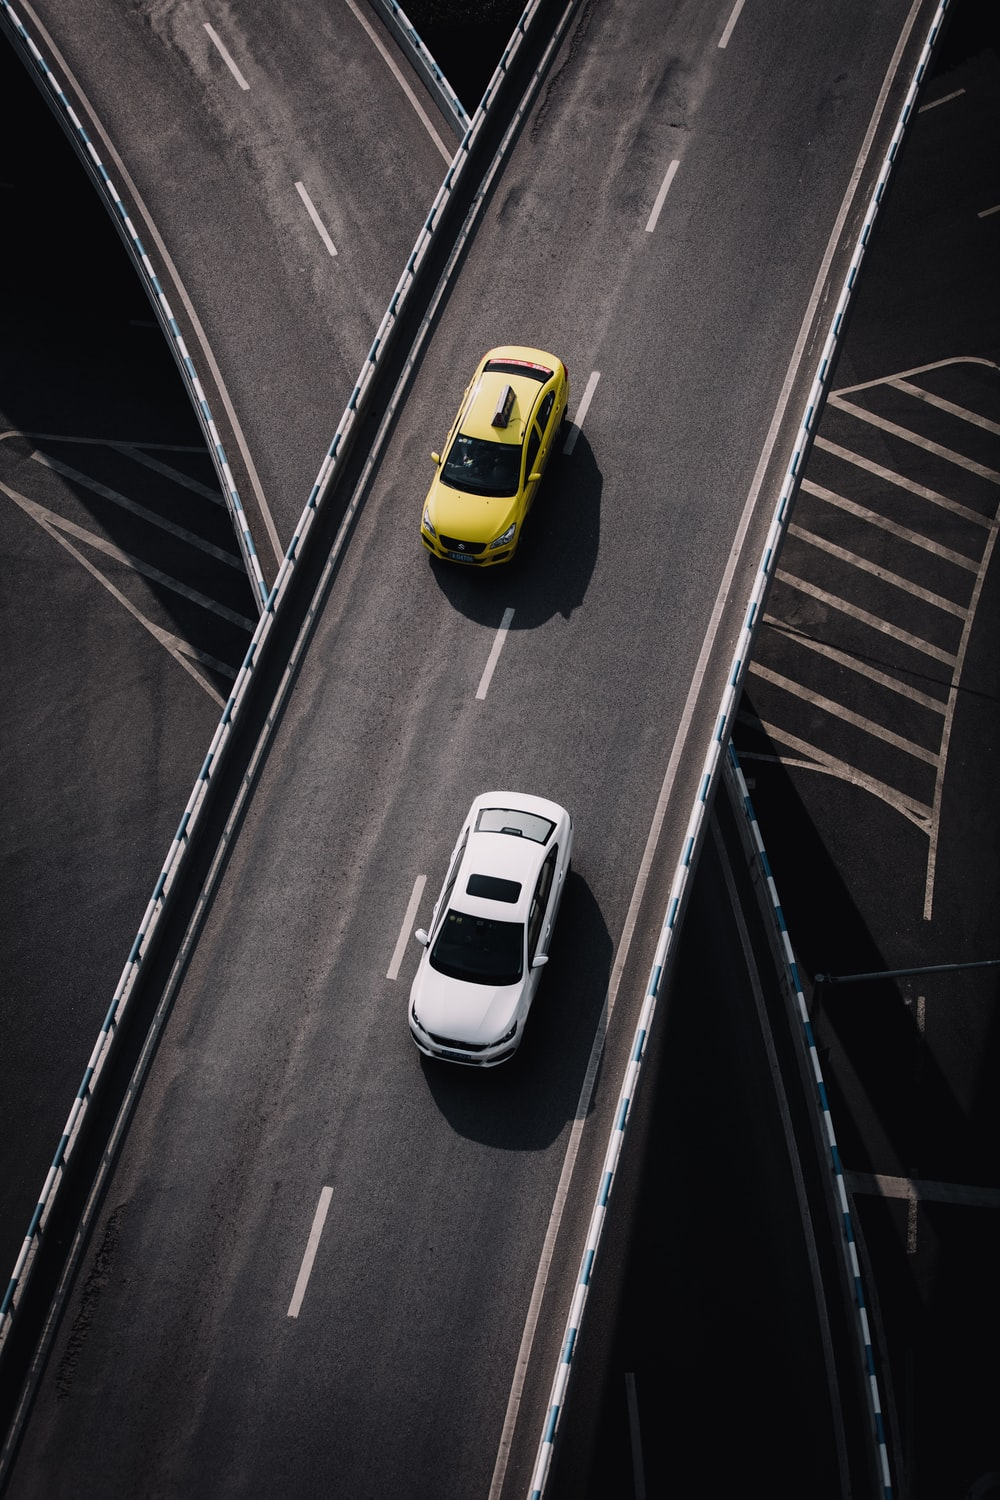 yellow and white vehicles passing on black asphalt road